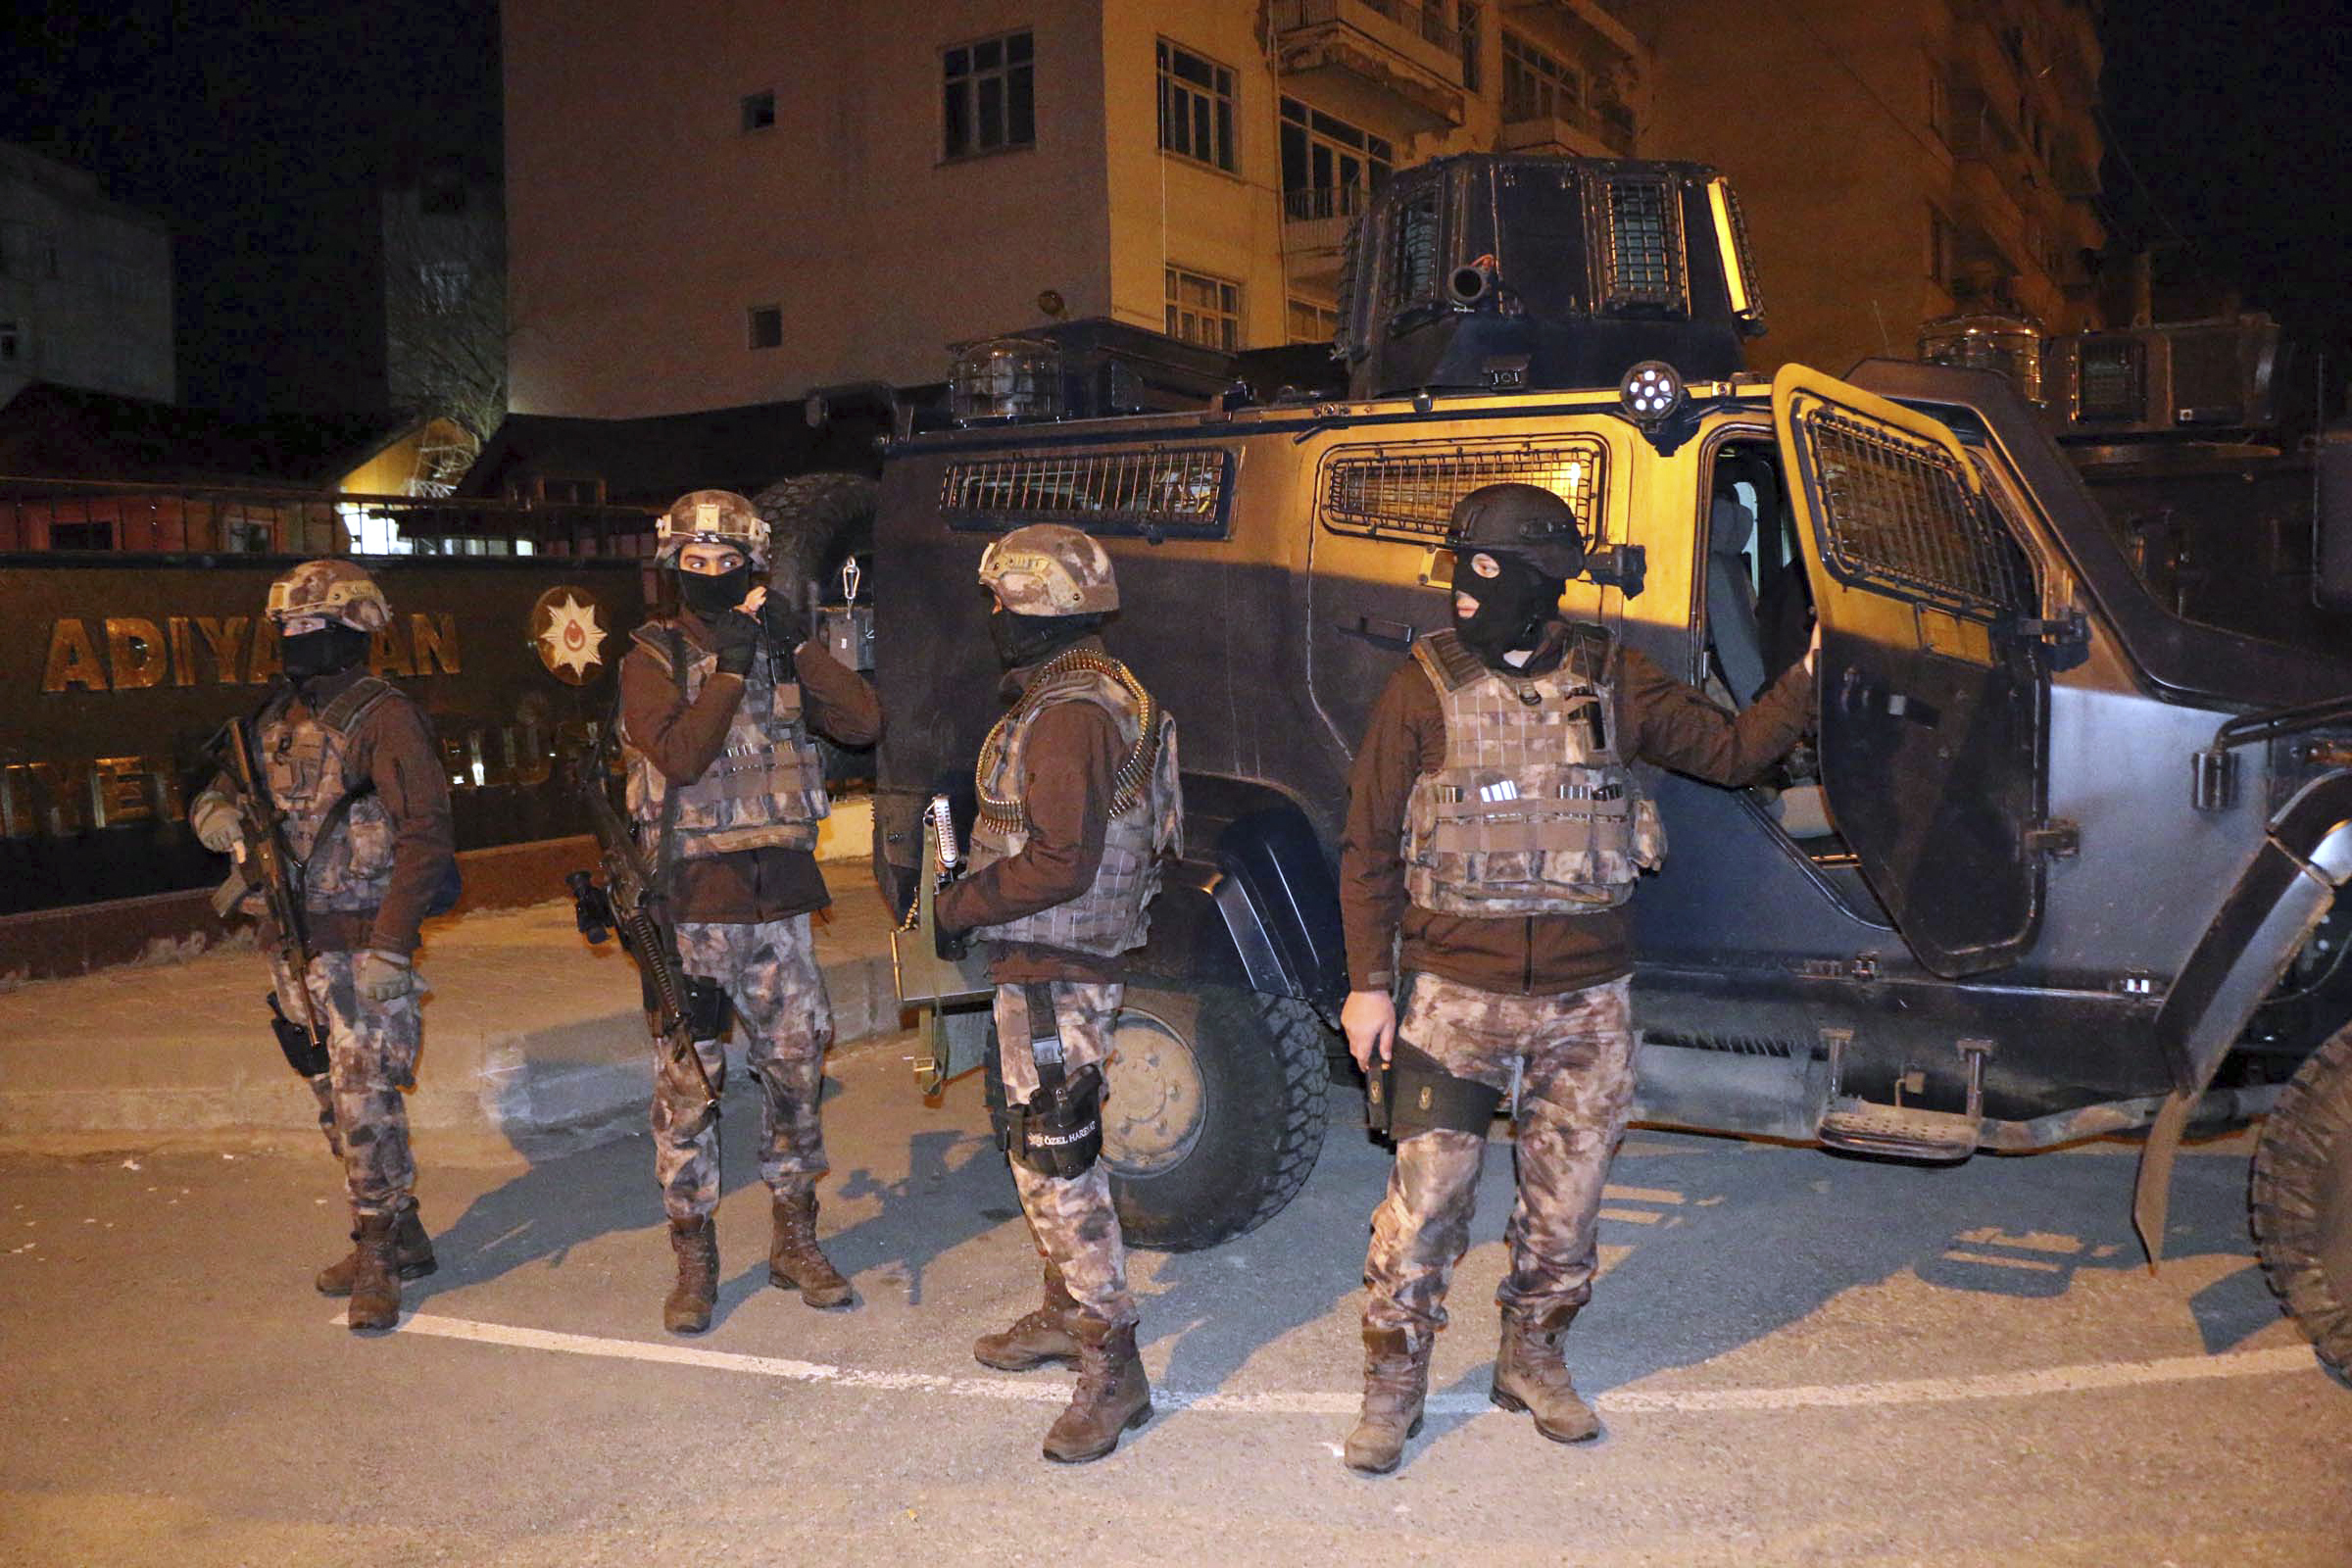 Turkish anti-terrorism police stand by their armoured vehicle during an operation to arrest people over alleged links to ISIS, in Adiyaman, southeastern Turkey on Feb. 5, 2017.  (Mahir Alan/Dha-Depo Photos via AP)